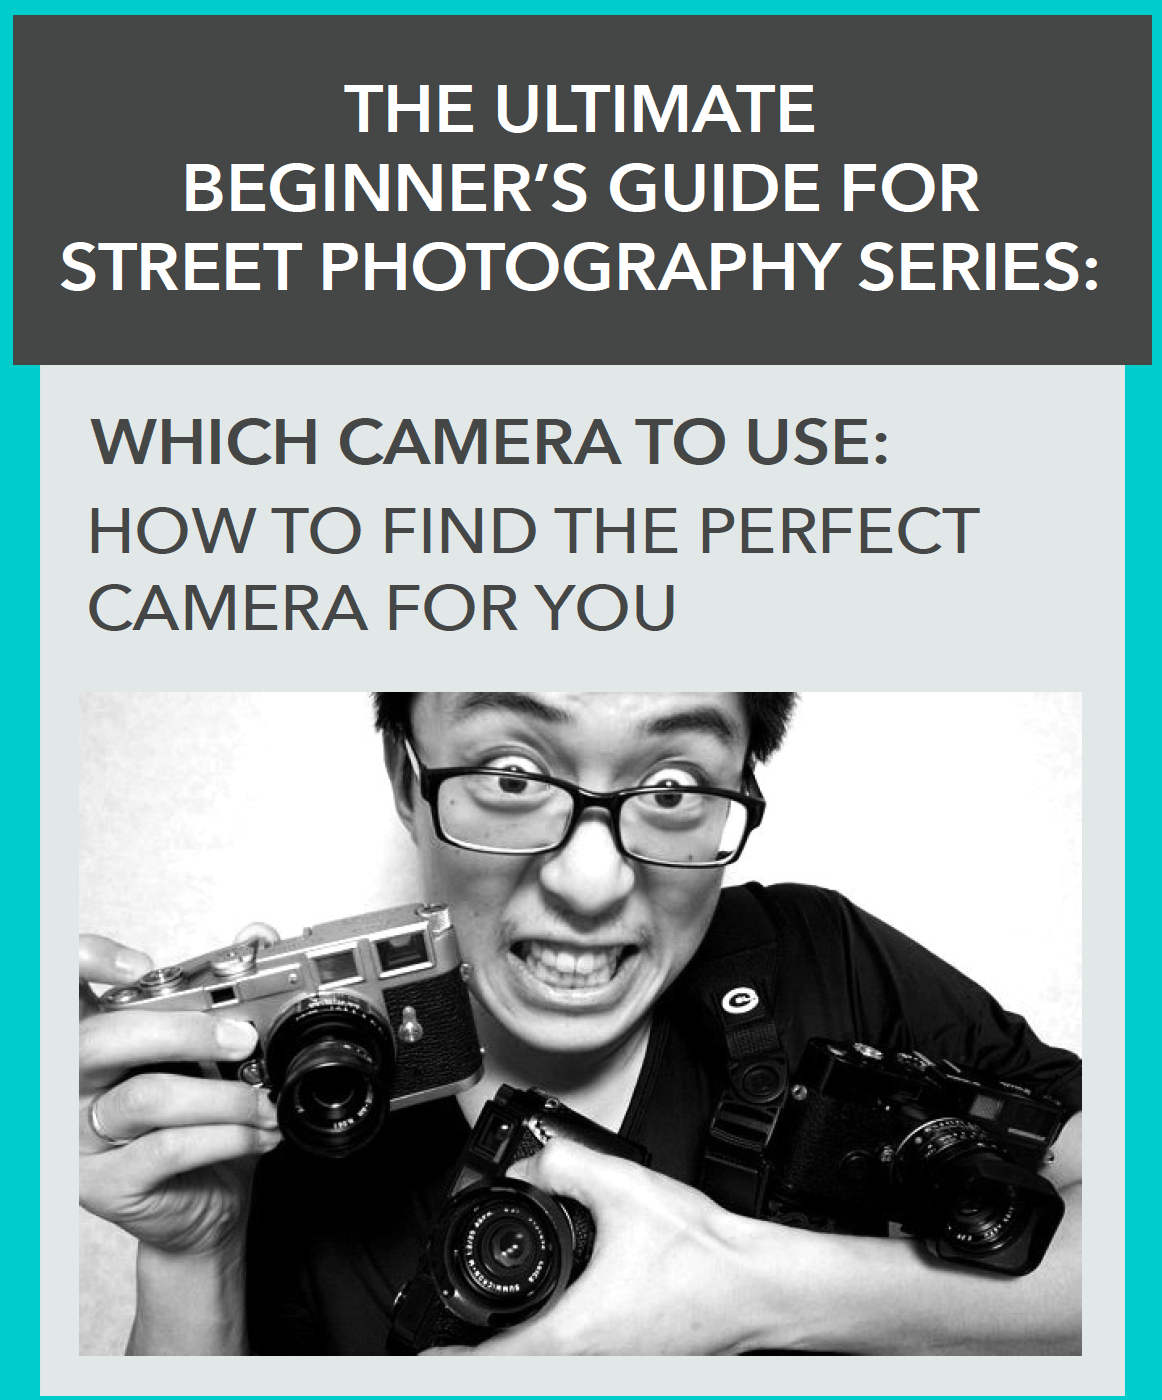 What is the best camera for street photography? NEWEST VISUALIZATION by ANNETTE KIM